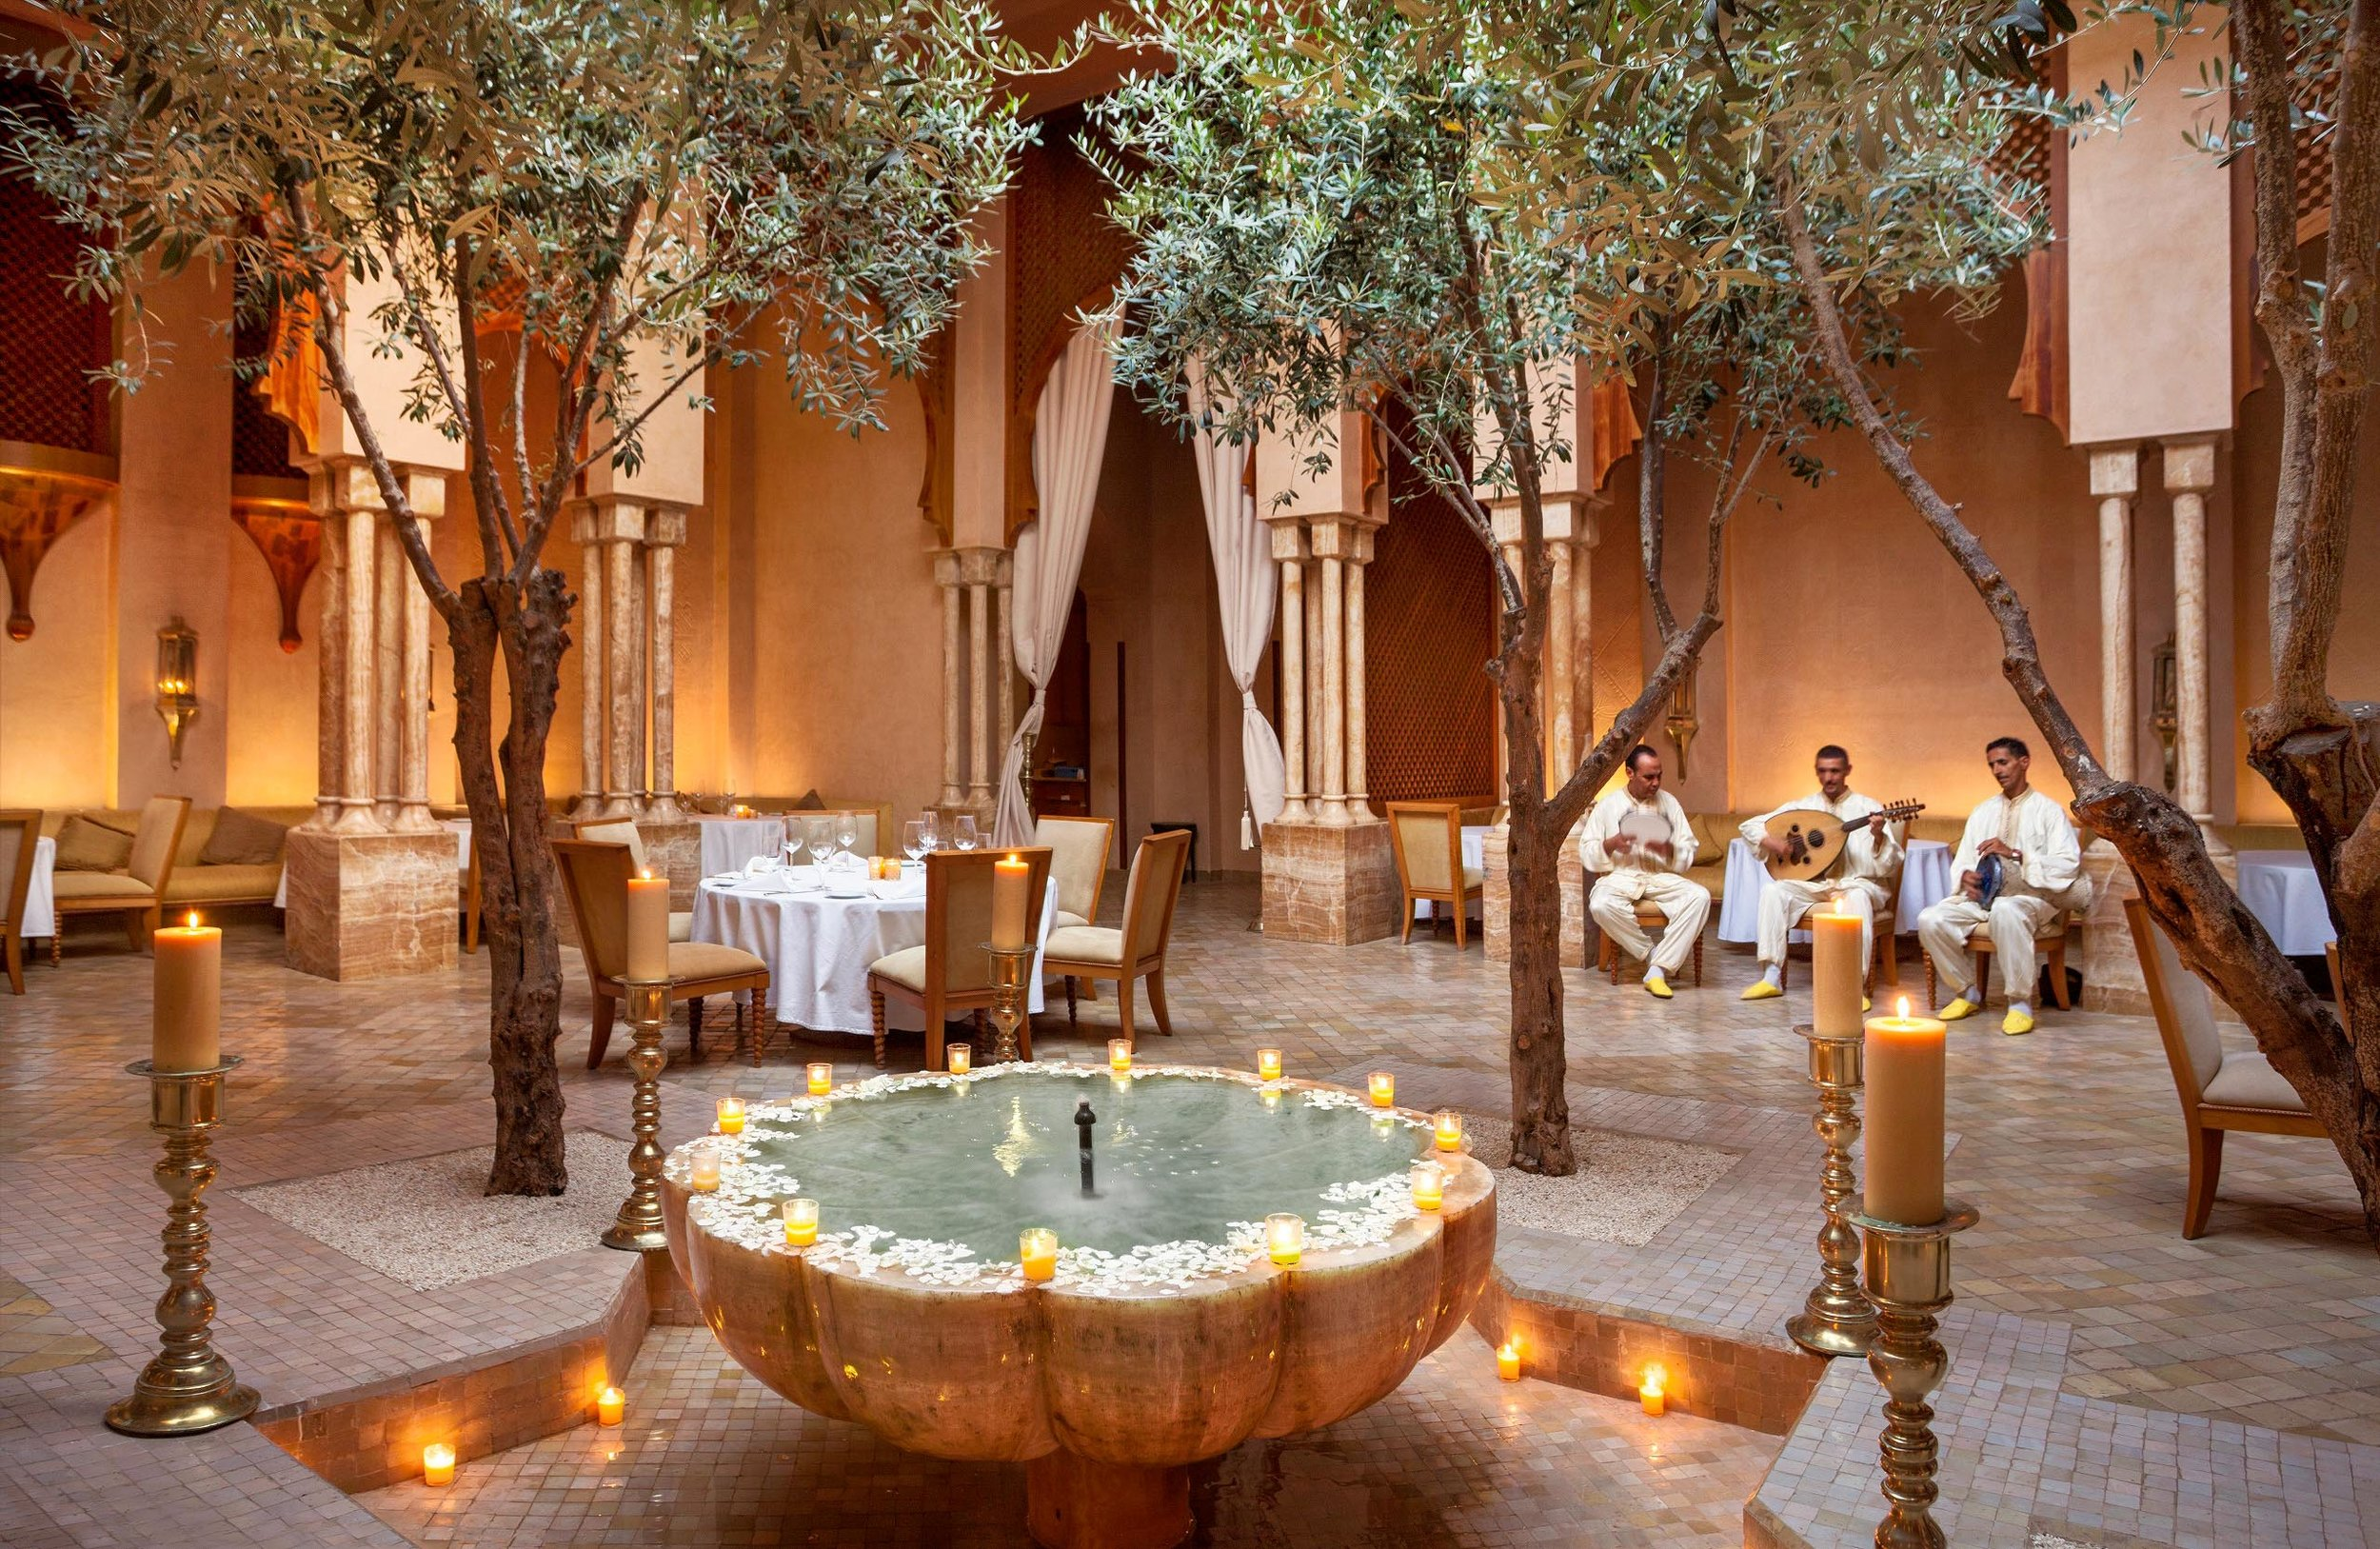 The stunning Moroccan restaurant complete with the rose petal-laced wishing well and local musicians.